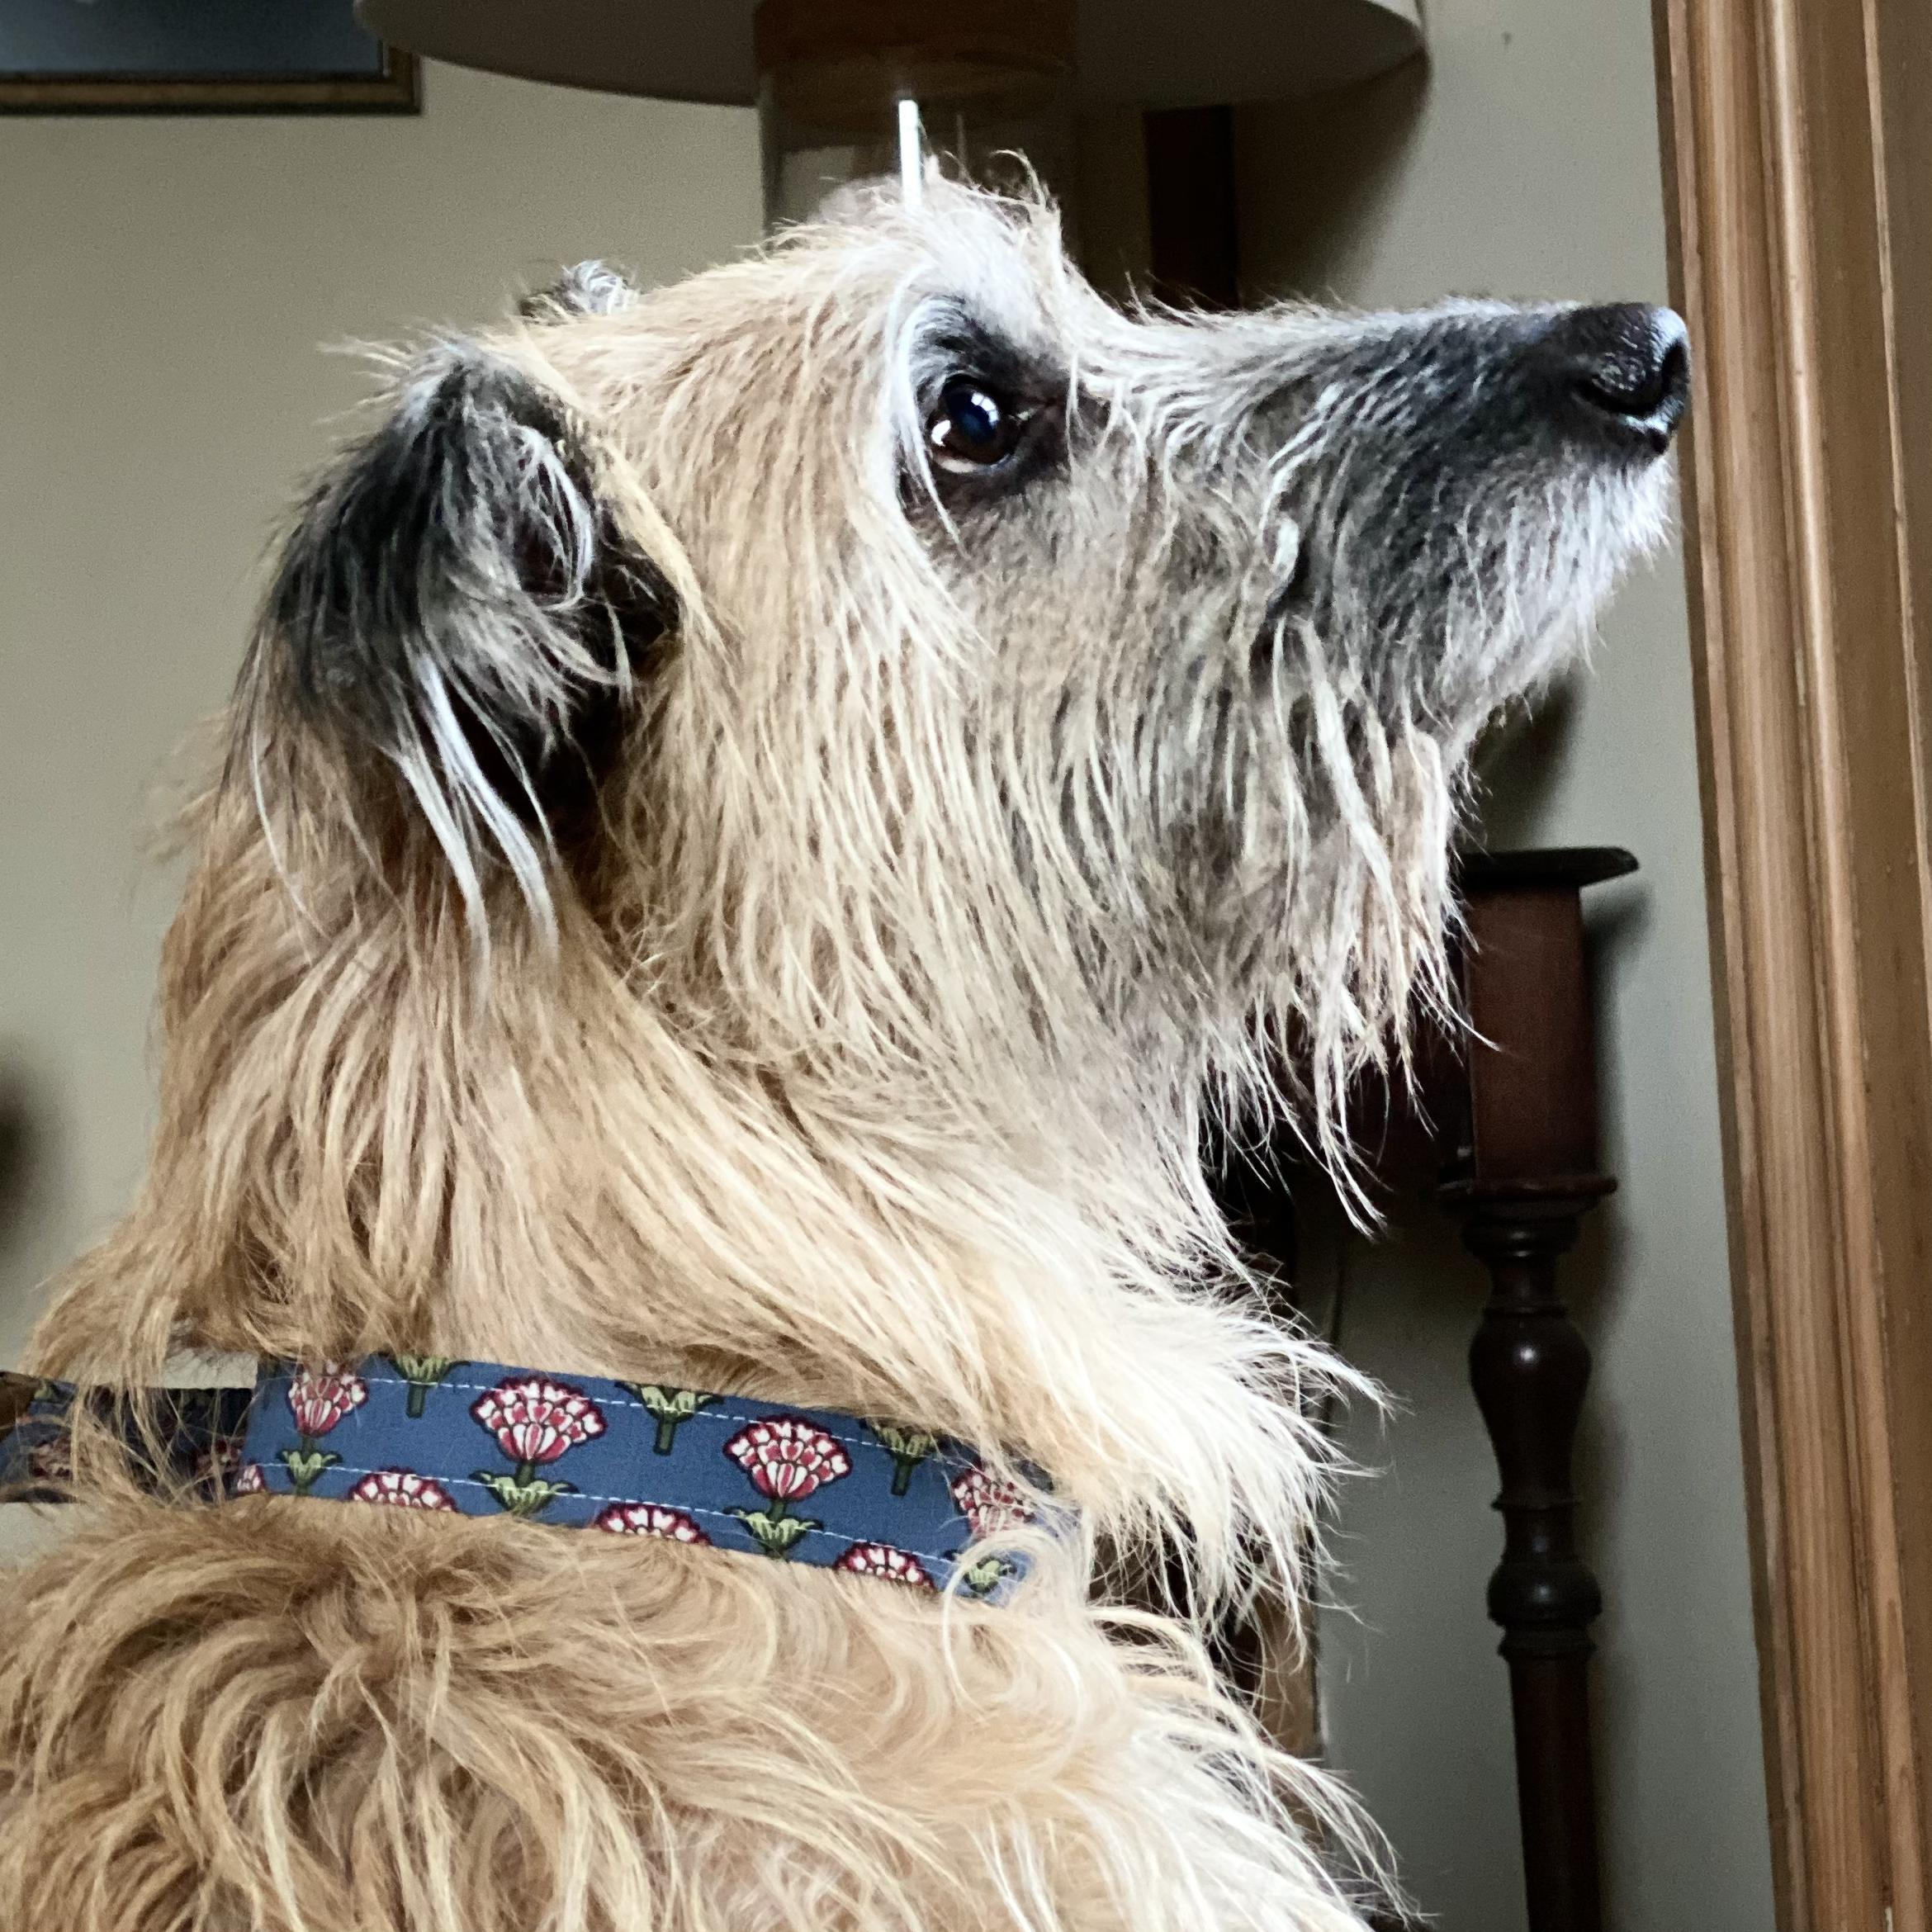 Shaggy yellow dog wearing a blue floral print dog collar with brass buckle